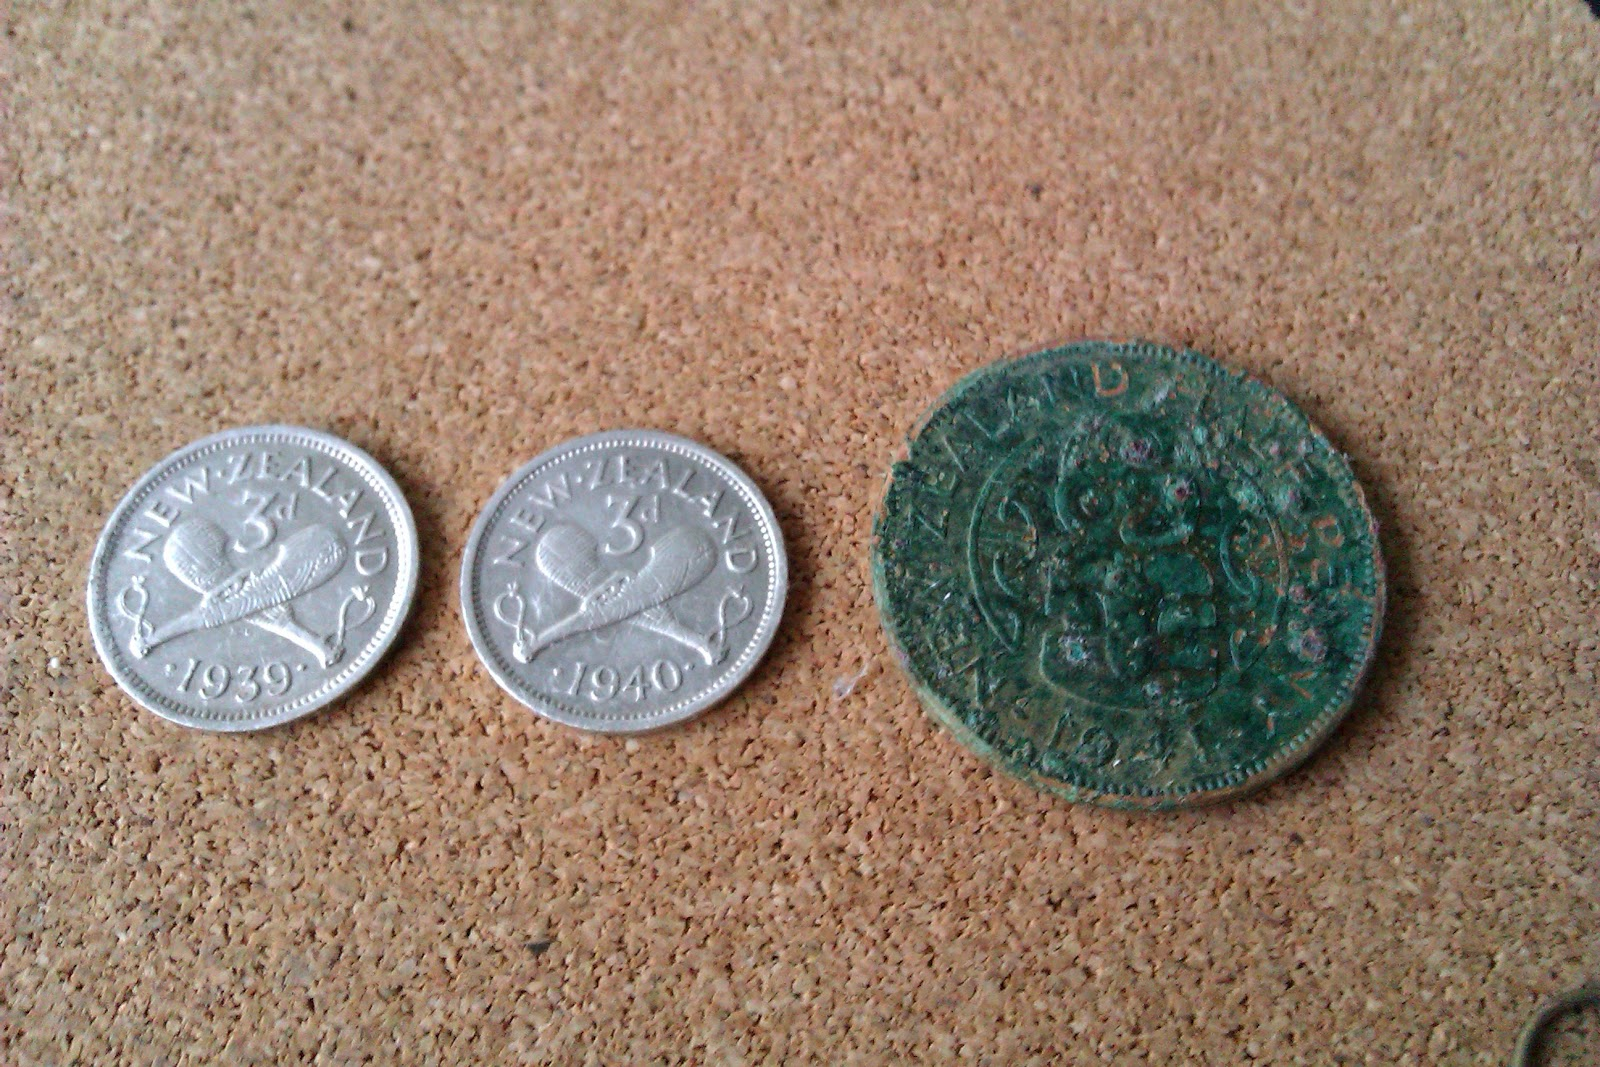 Auckland Metal Detecting Ring Recovery Services February 2012 Fun Detector To Findcoins At The Beach I Will Be Going Back 3d Place Get More Of Old Coins Hopefully